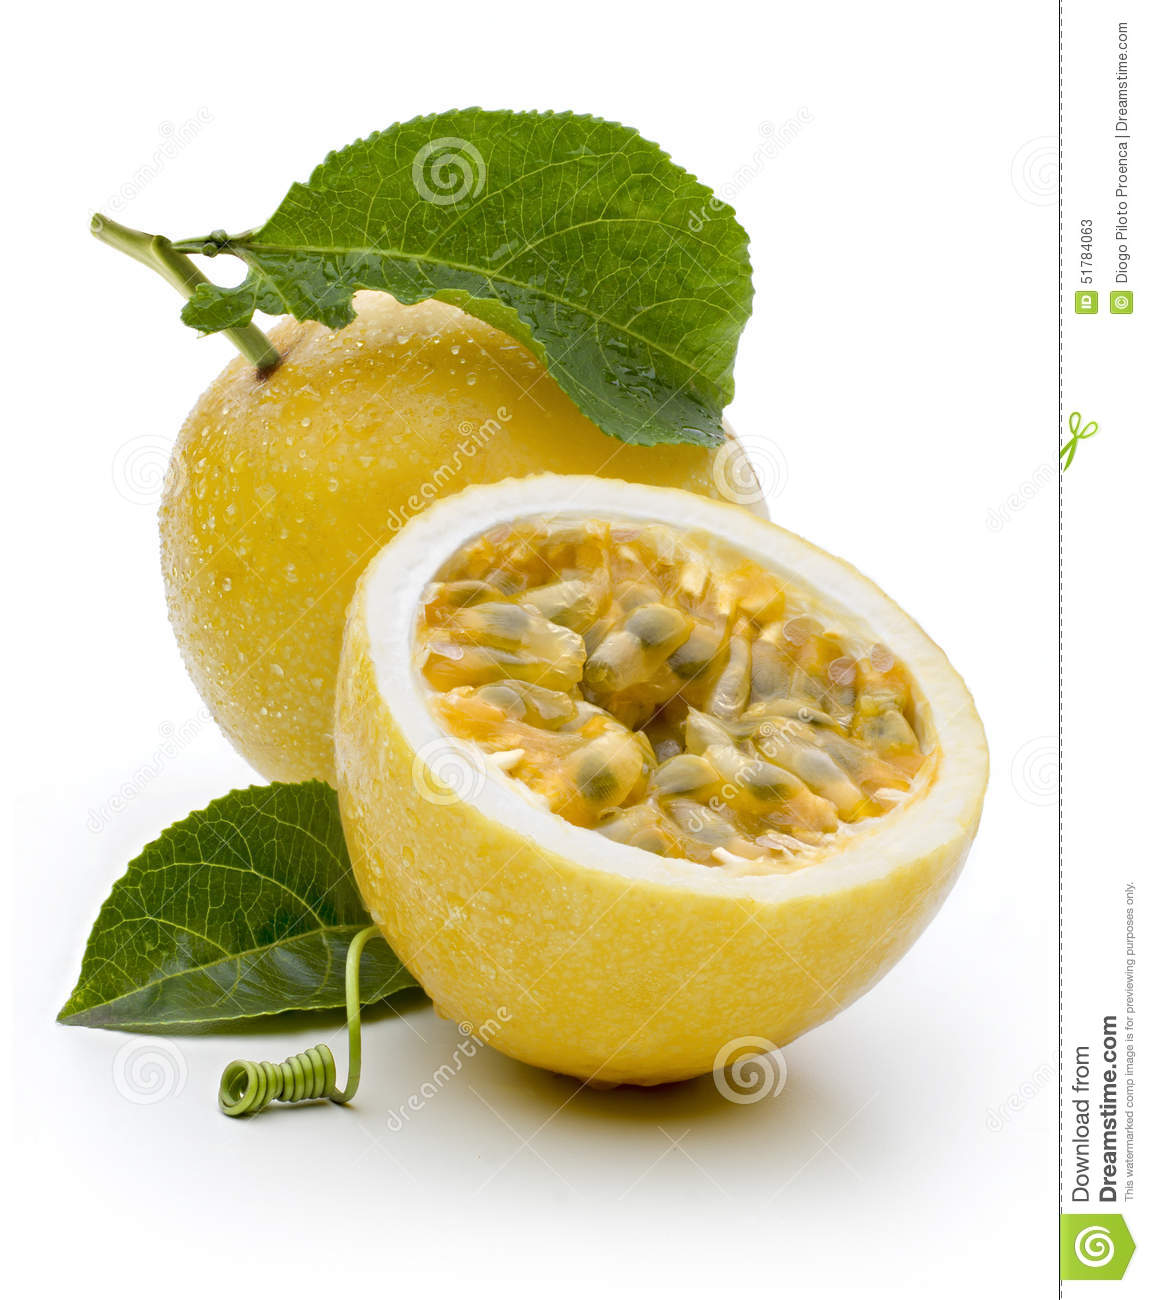 tomato a fruit or vegetable is passion fruit healthy